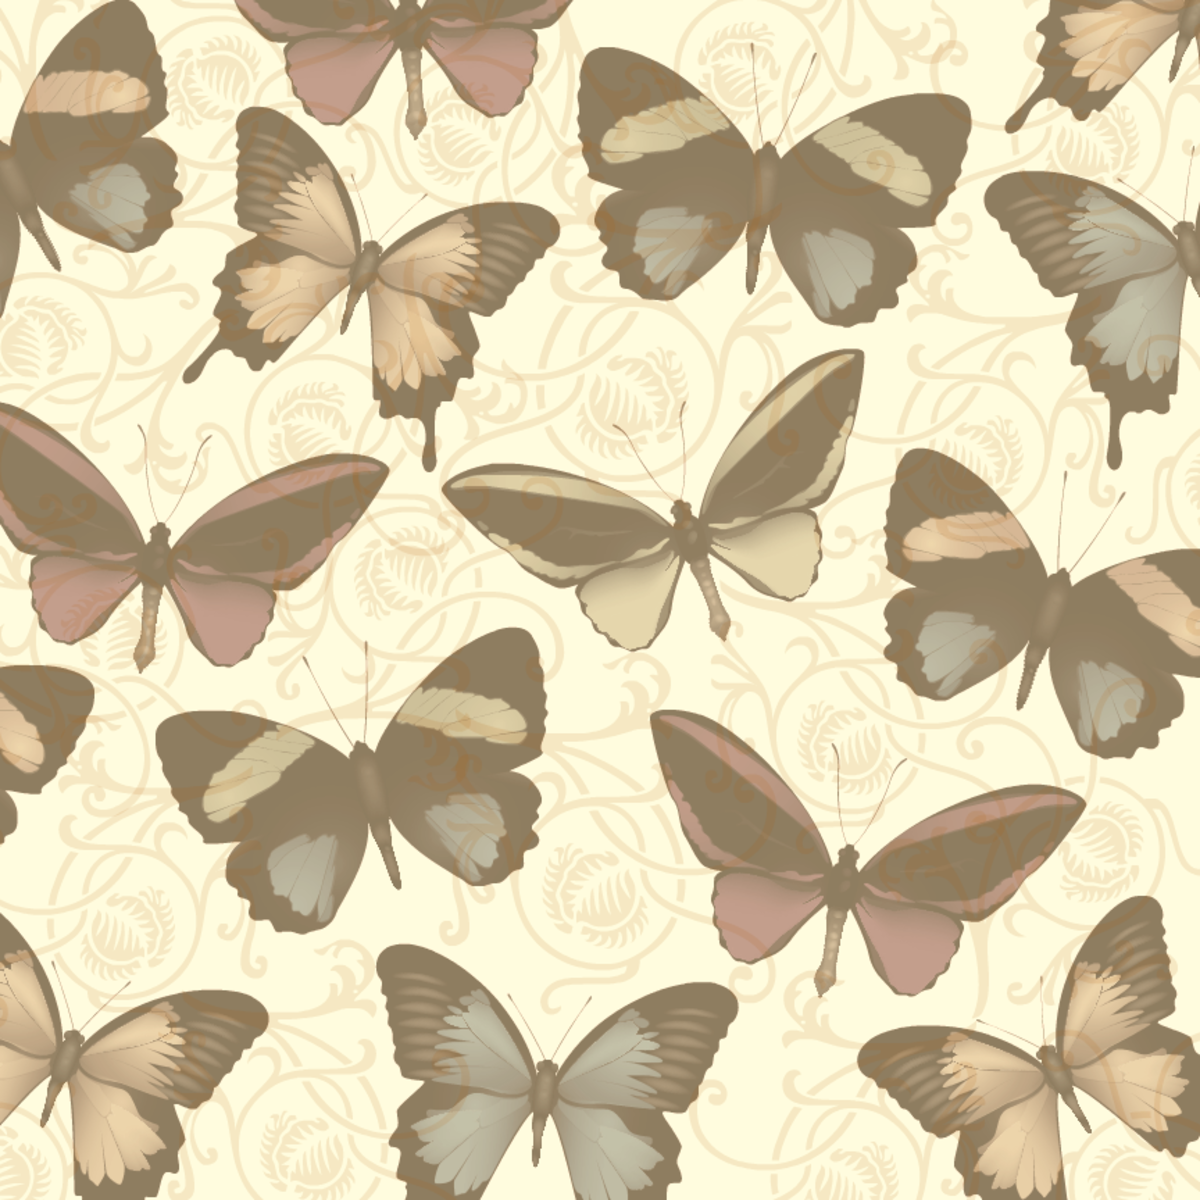 Vintage-look sepia tone butterflies scrapbooking paper with scrolls